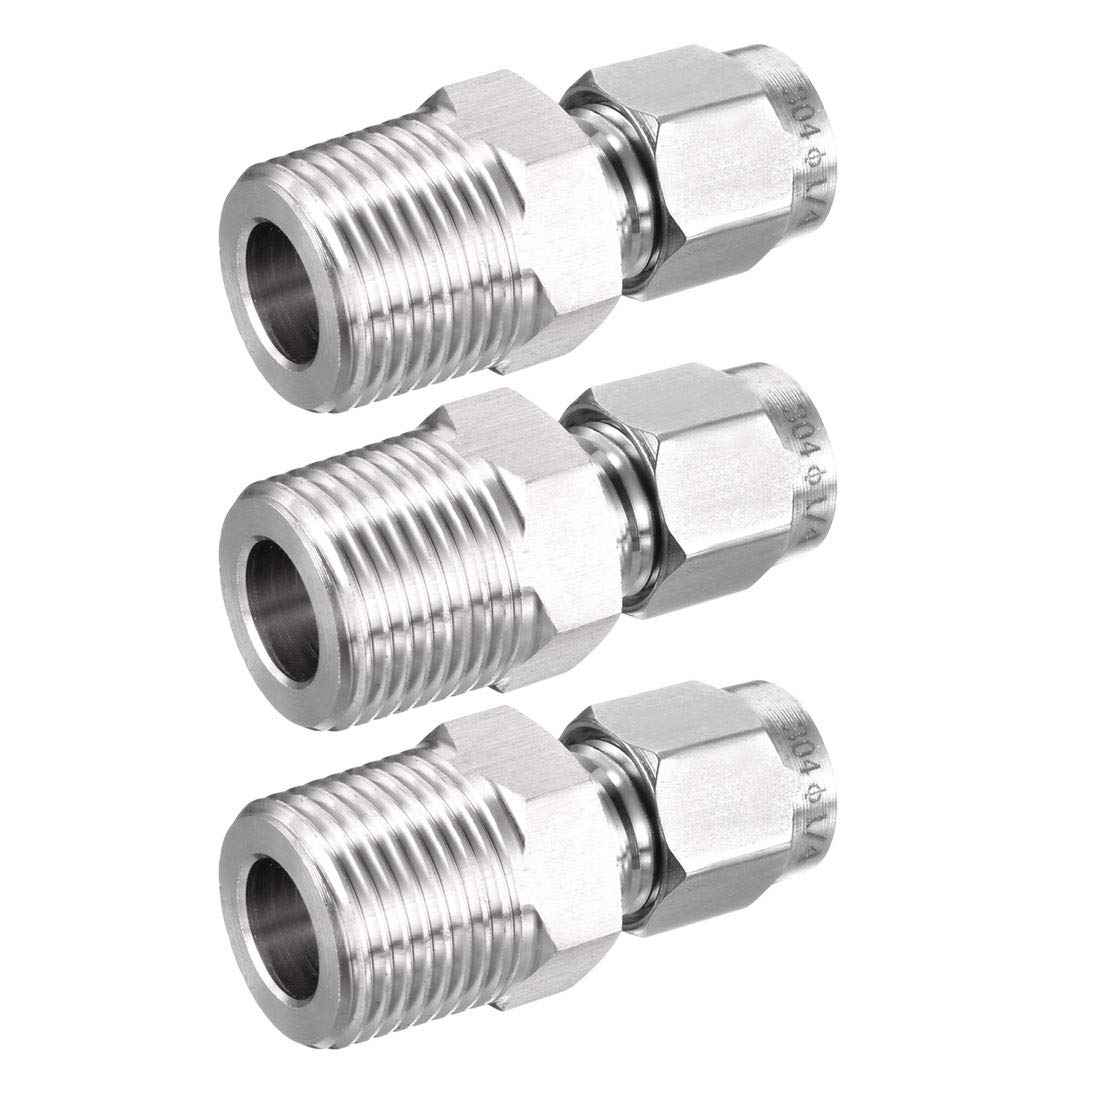 uxcell Stainless Steel Compression Tube Fitting 3/8-inch NPT Male x Ф1/4-inch Tube OD 3pcs